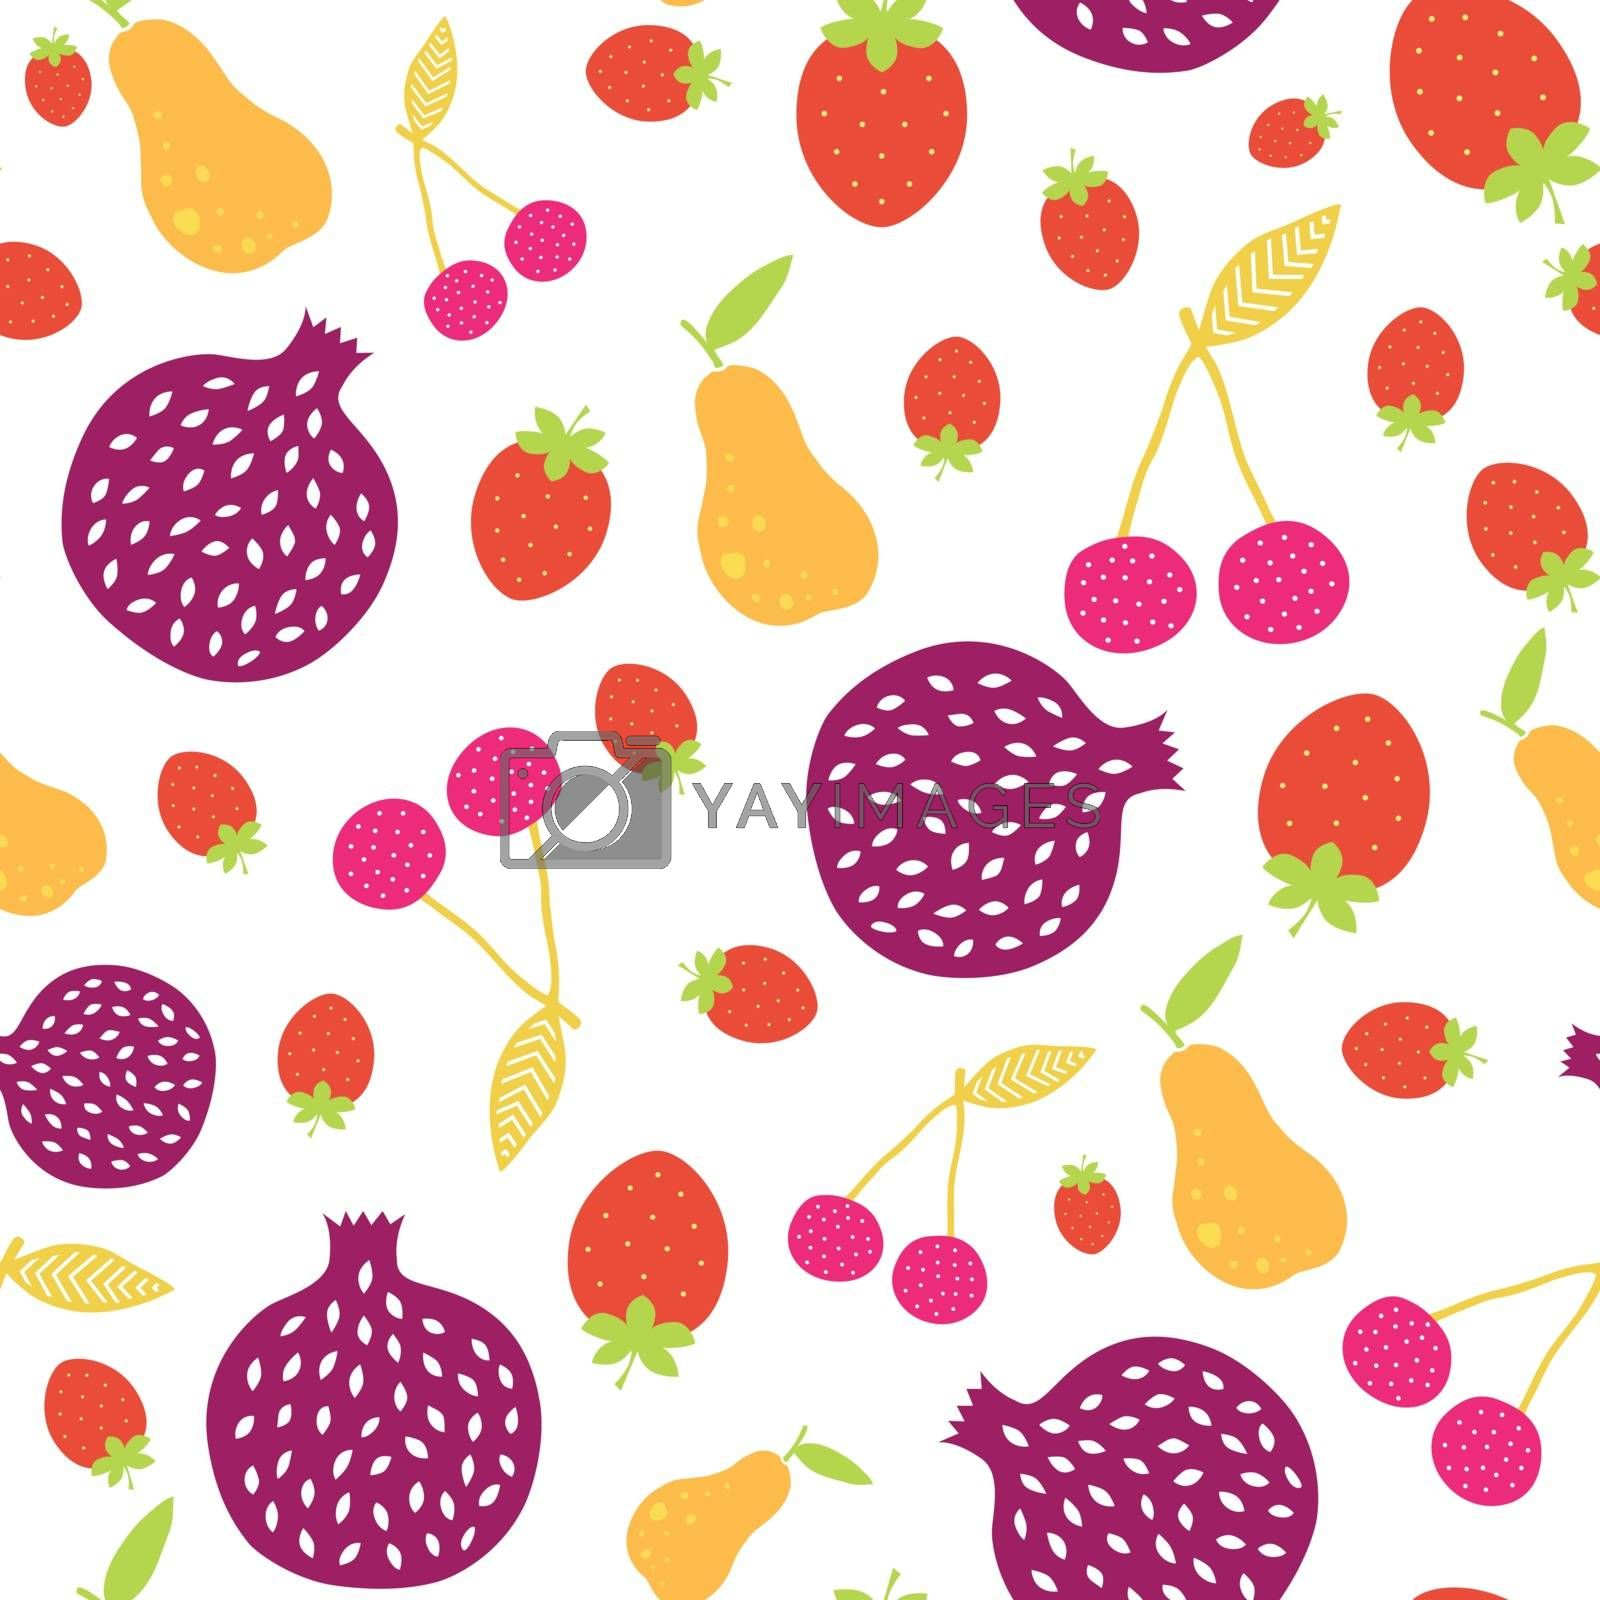 Vector Fun Colorful Fruit Seamless Pattern graphic design